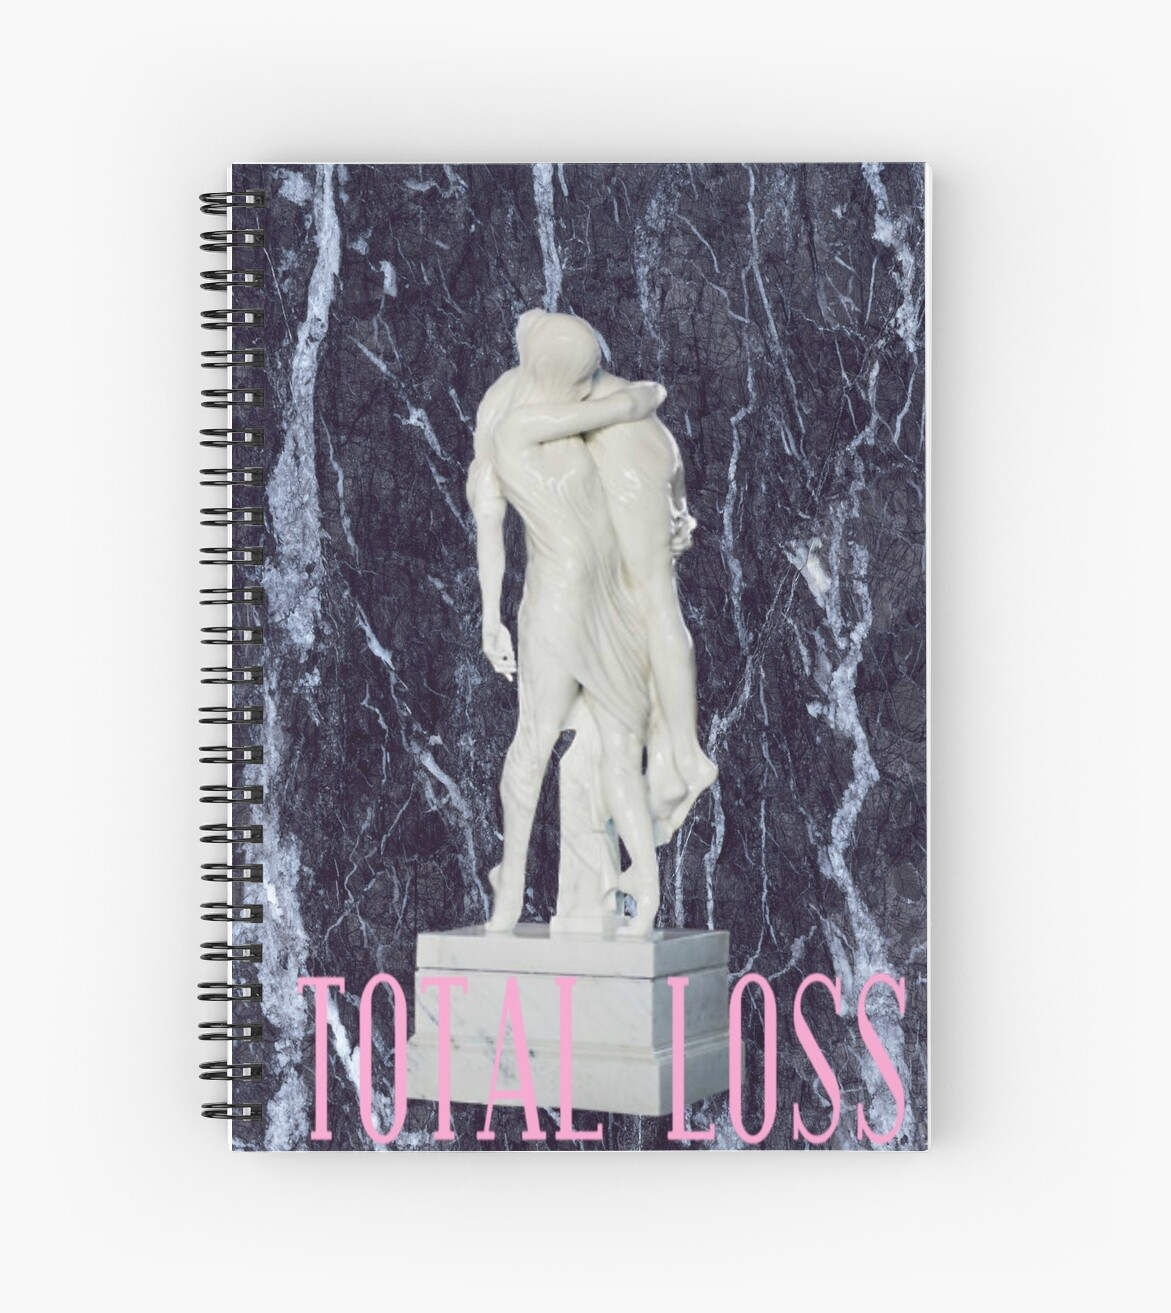 TOTAL LOSS by singmetodeath